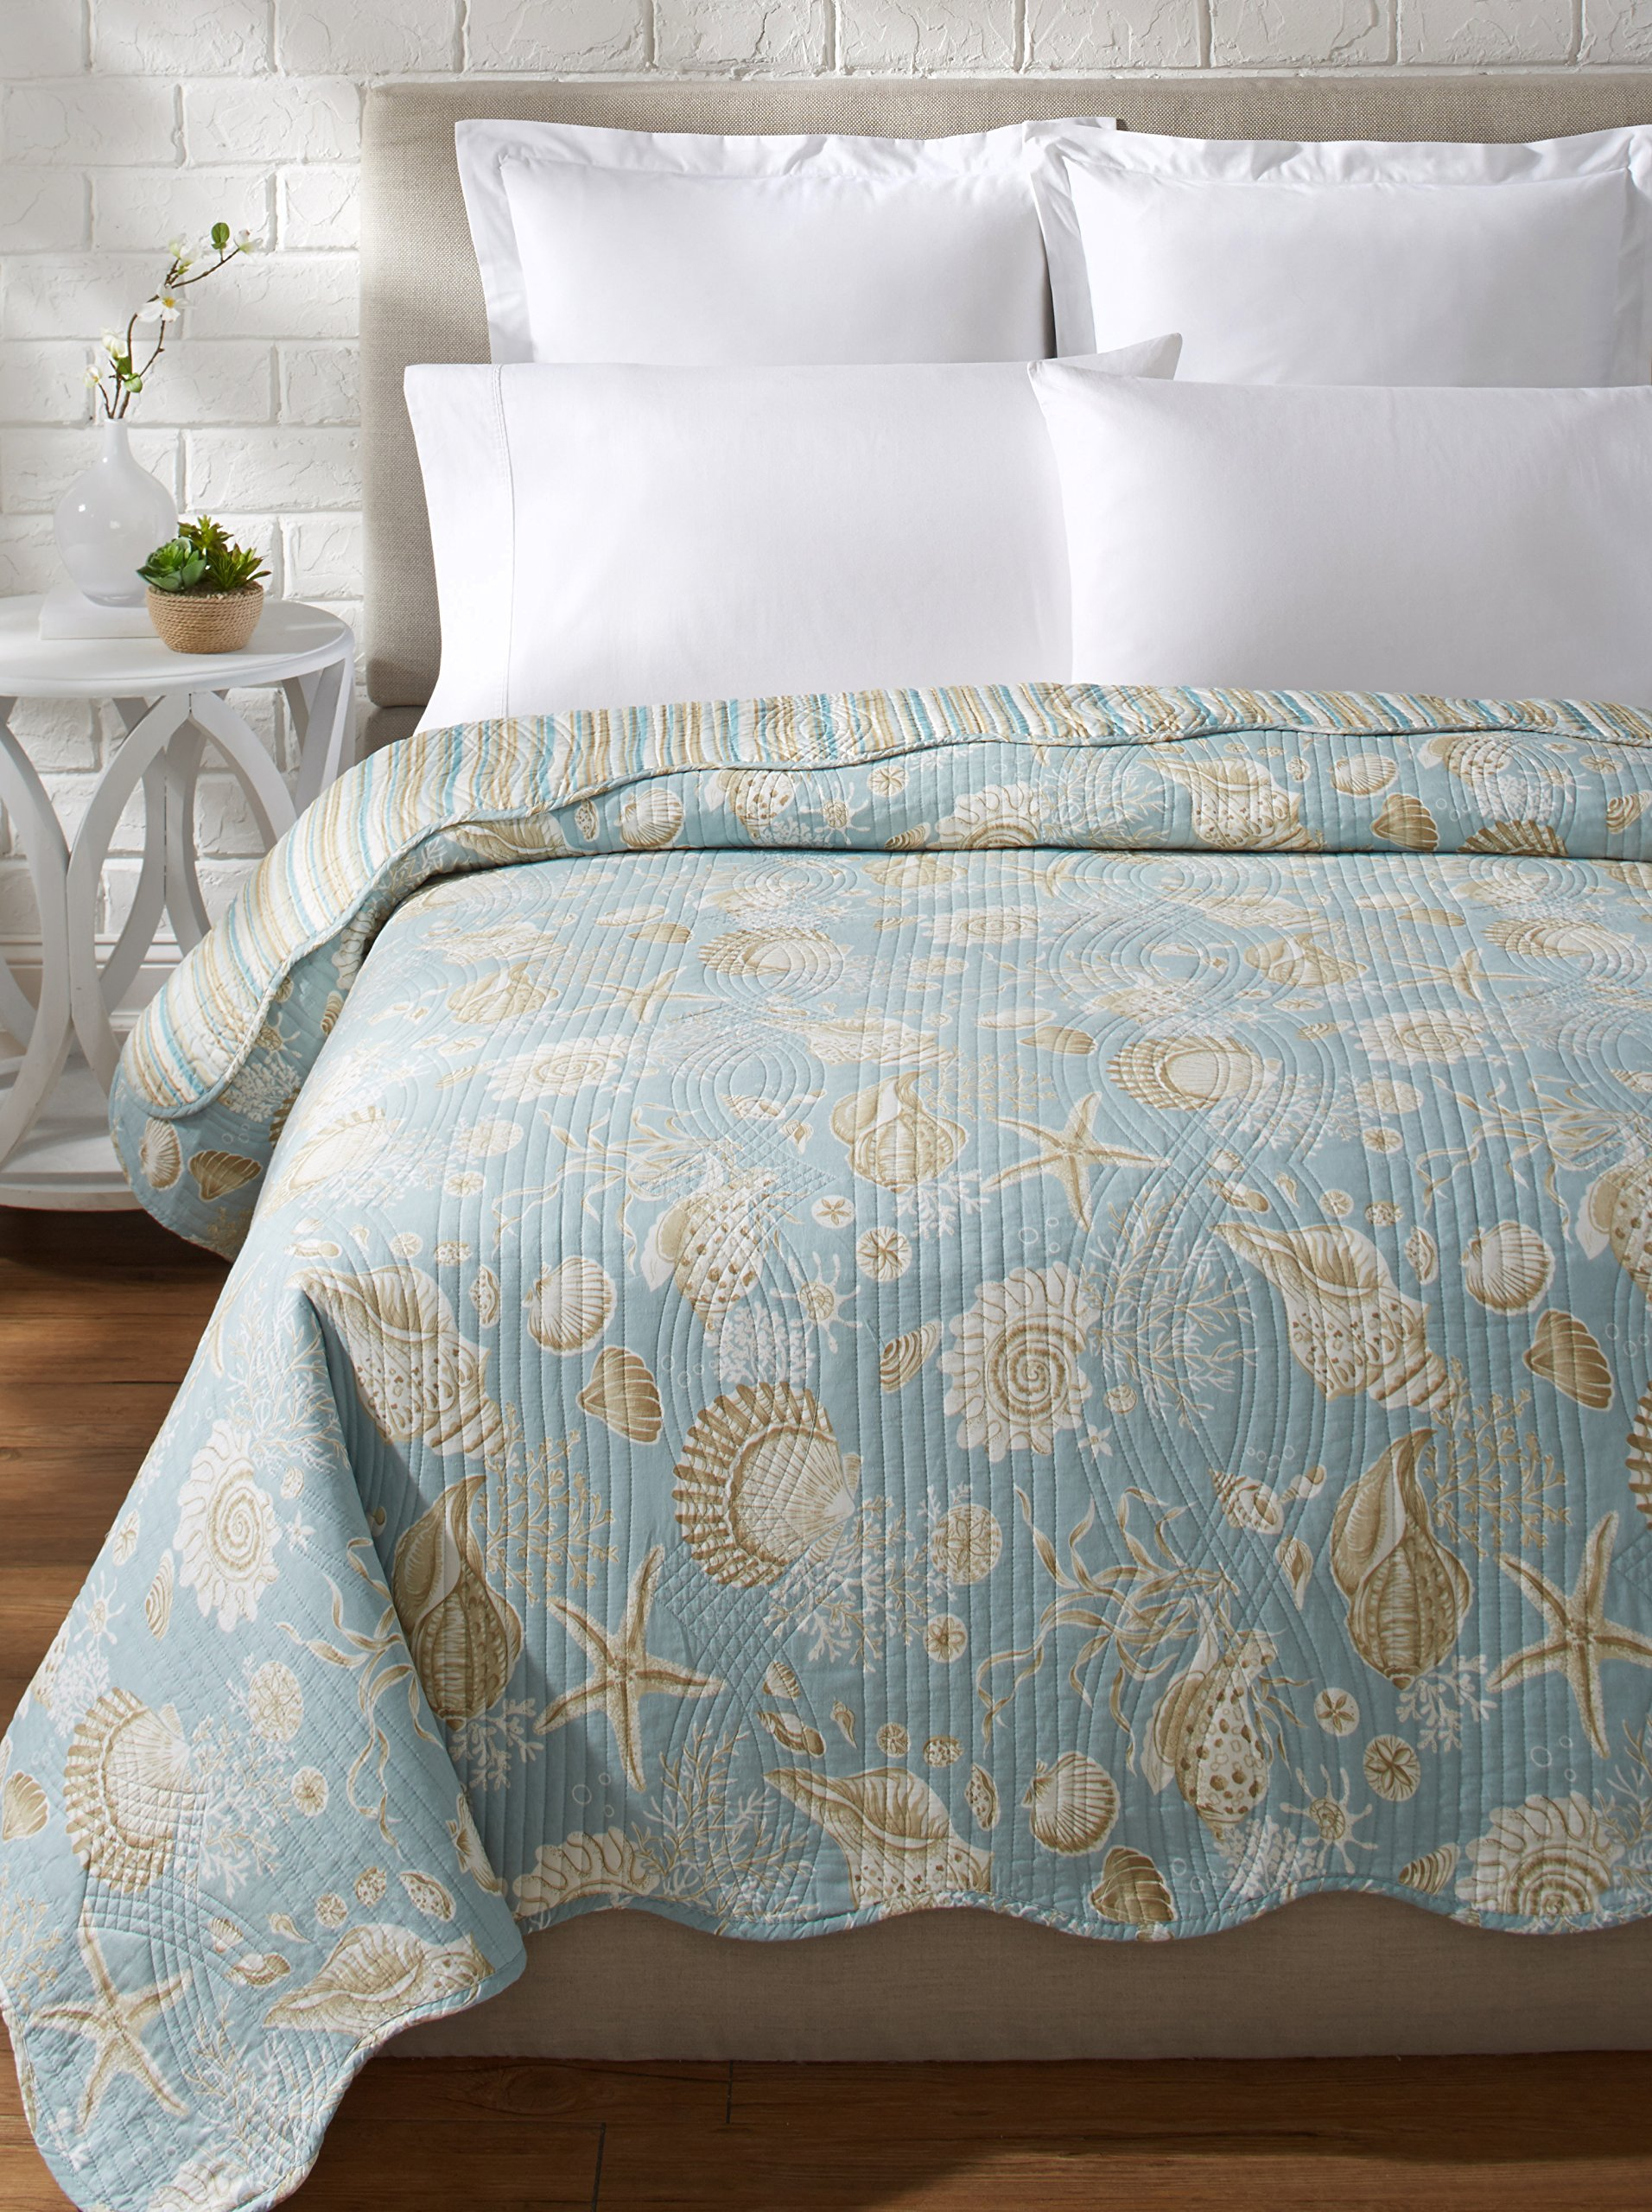 C&F Home Luxury Oversized Natural Shells King Quilt 105x92